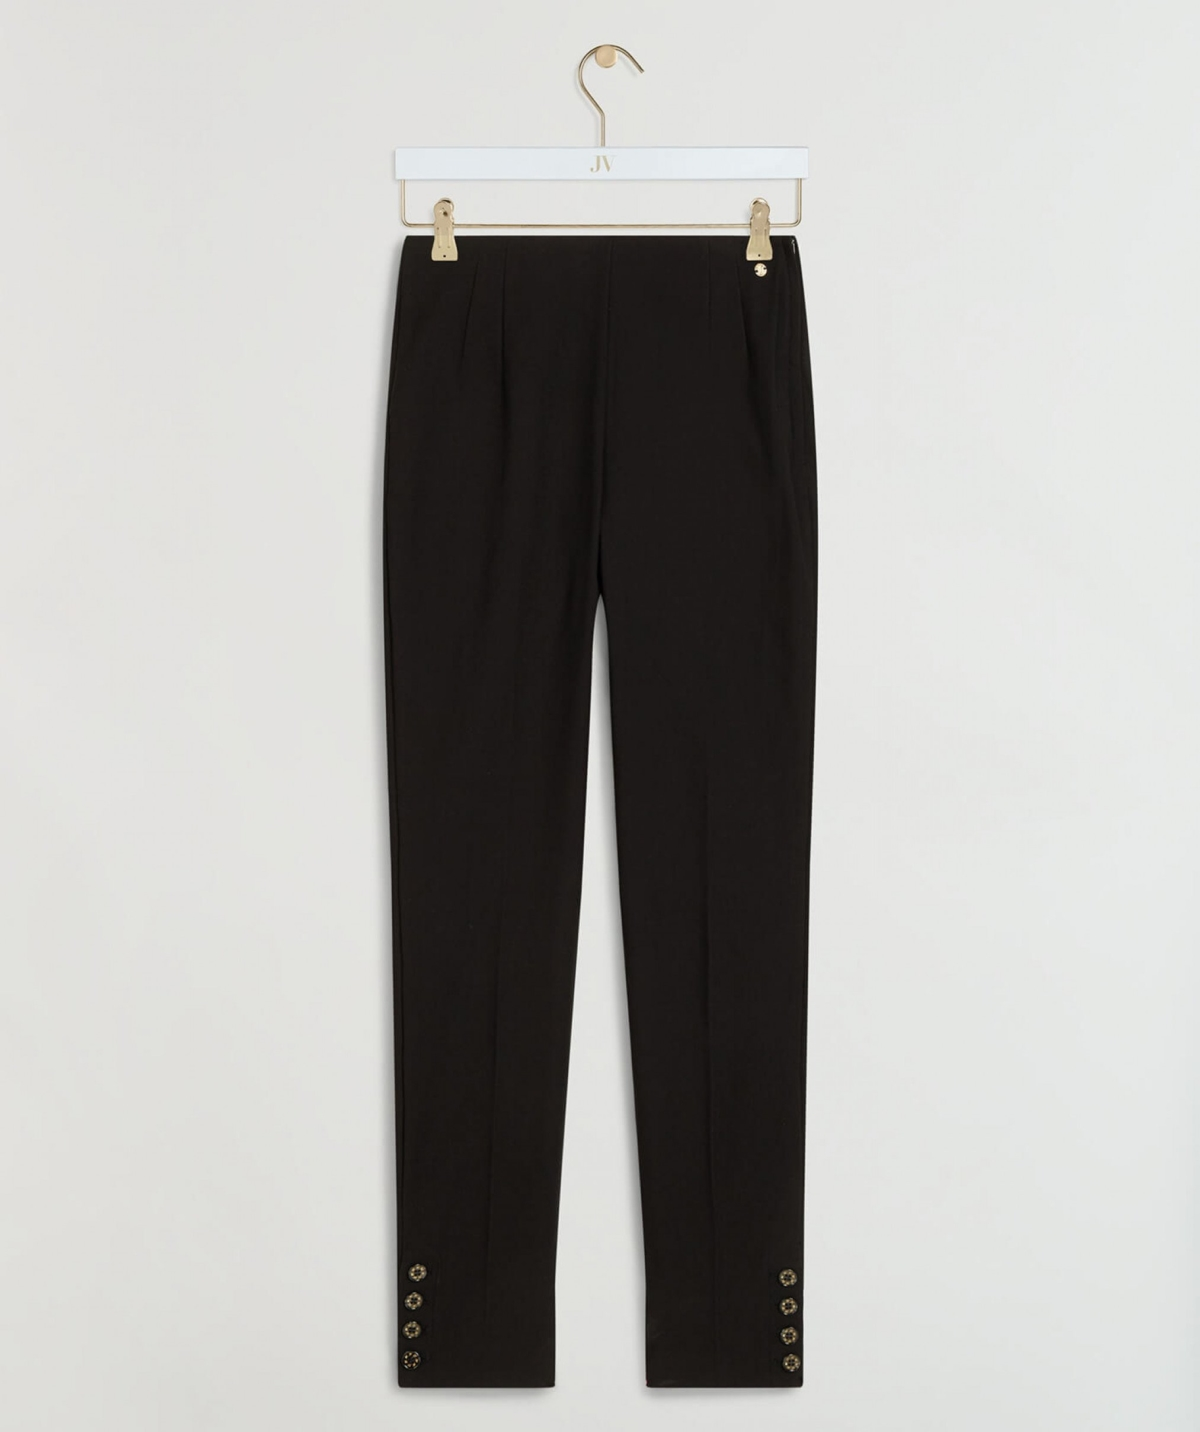 JV PANTS NOVALEE BLACK NEW